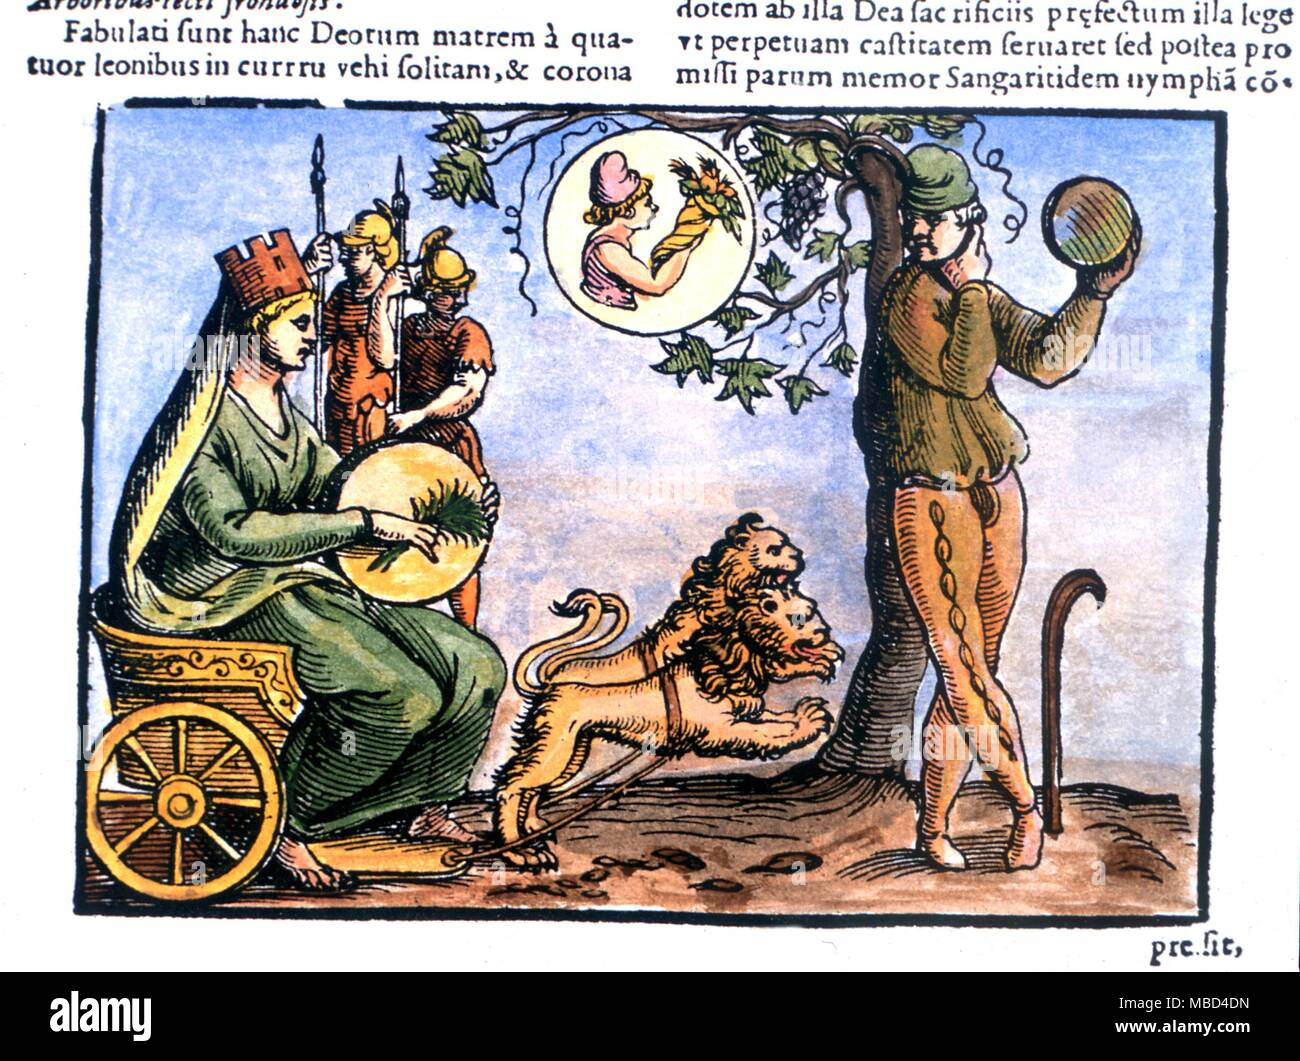 Greek Mythology - Rhea, the mother of Zeus, and one of the Titans, later identified with Cybele and Ops. Earth goddess of plenty. From Natalis Comitis' 'Mythologiae'. Lib. V, 17th century edition. Private Collection. - Stock Image